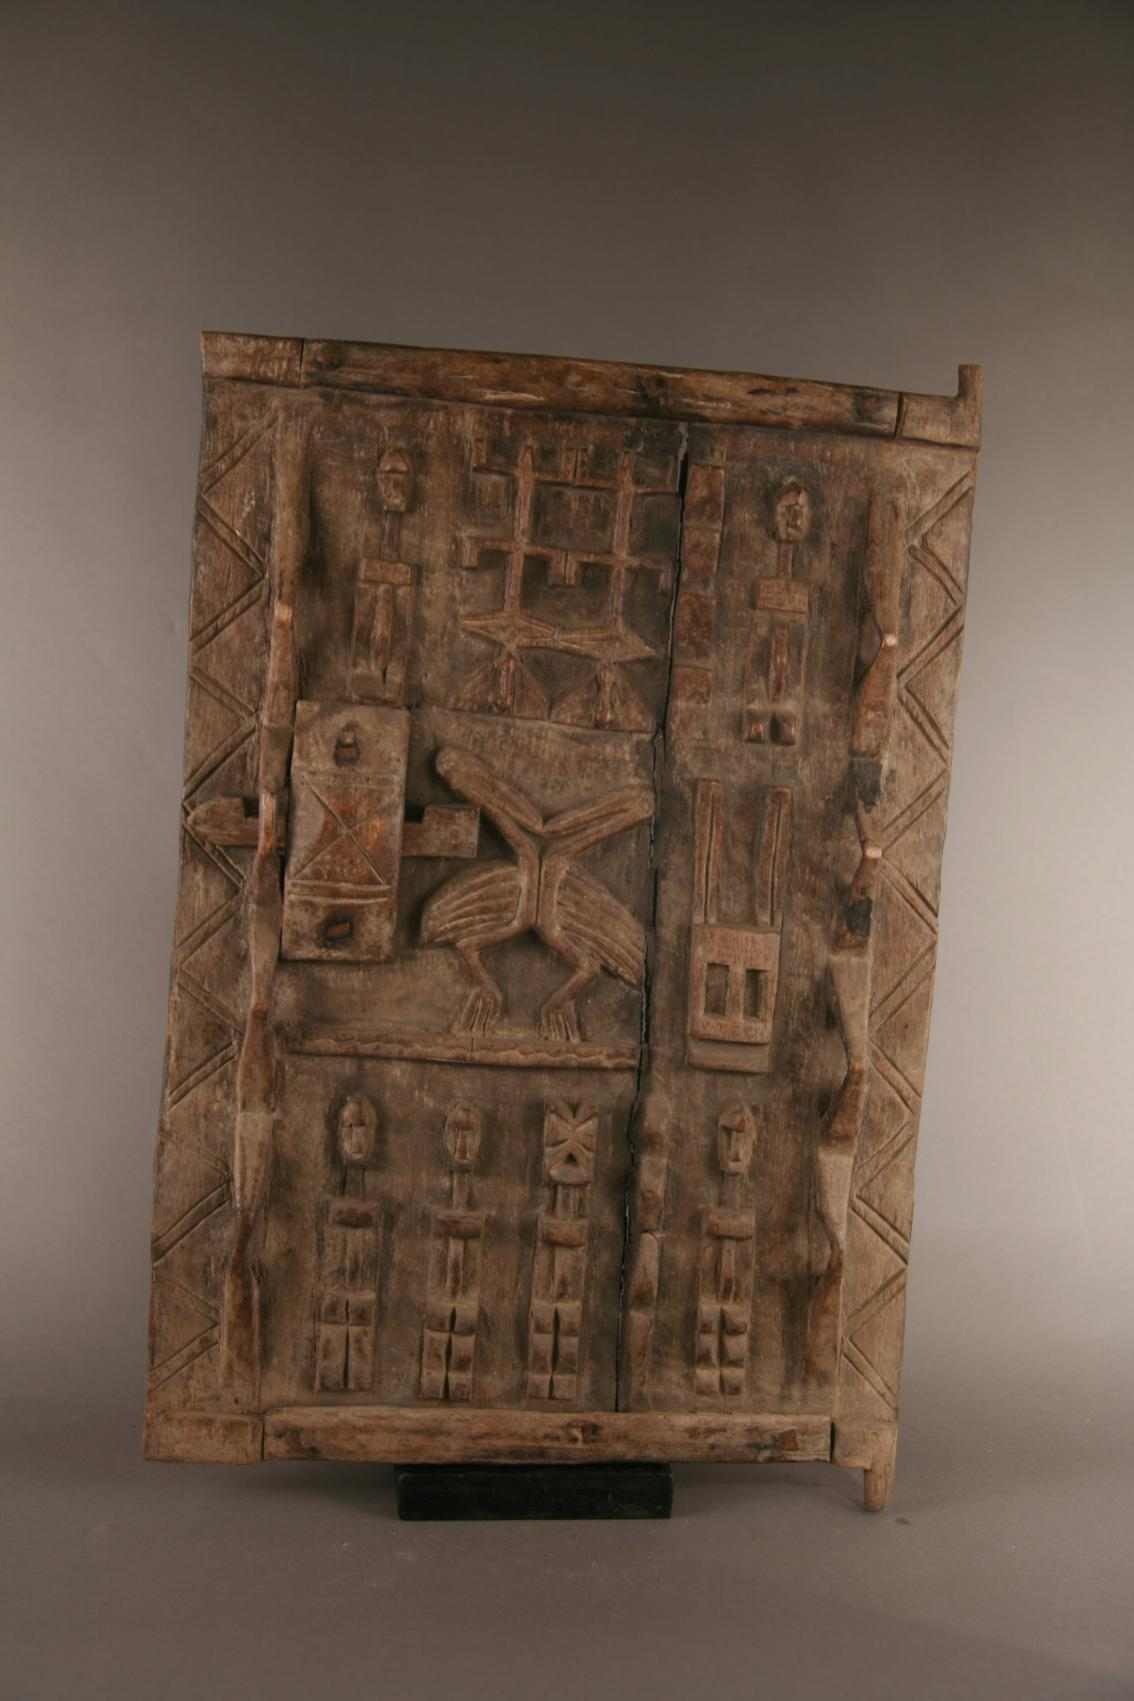 African Art Door Dogon Artmorello C014U006 A